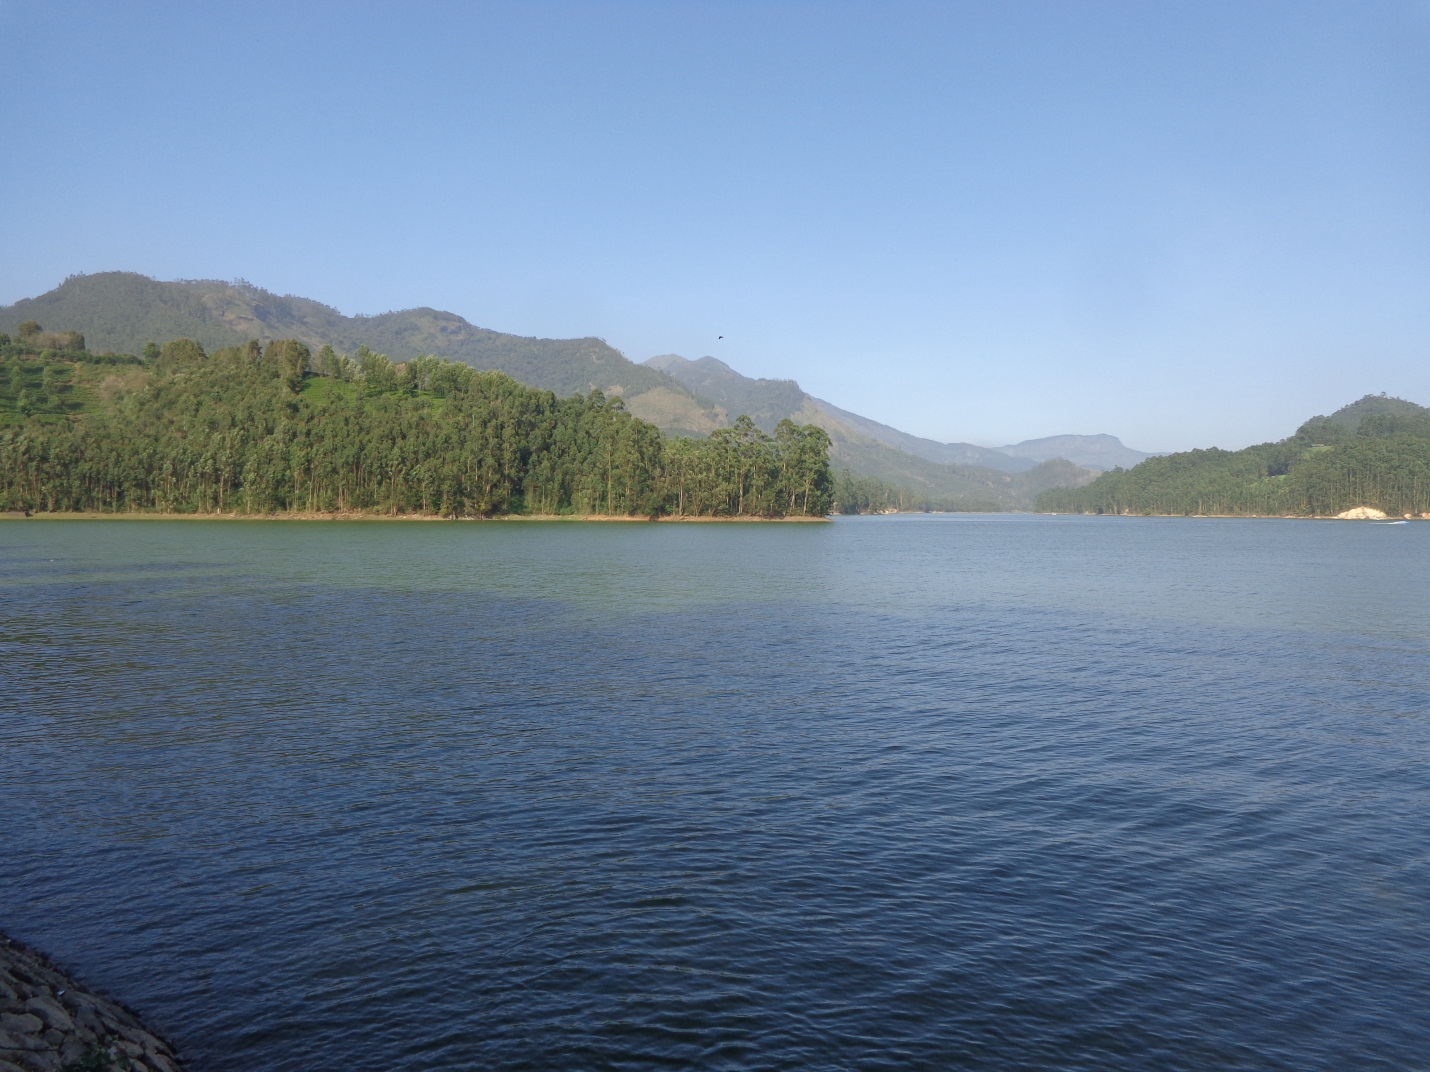 Munnar In A Nutshell – Tea And Tranquility In God's Own Country